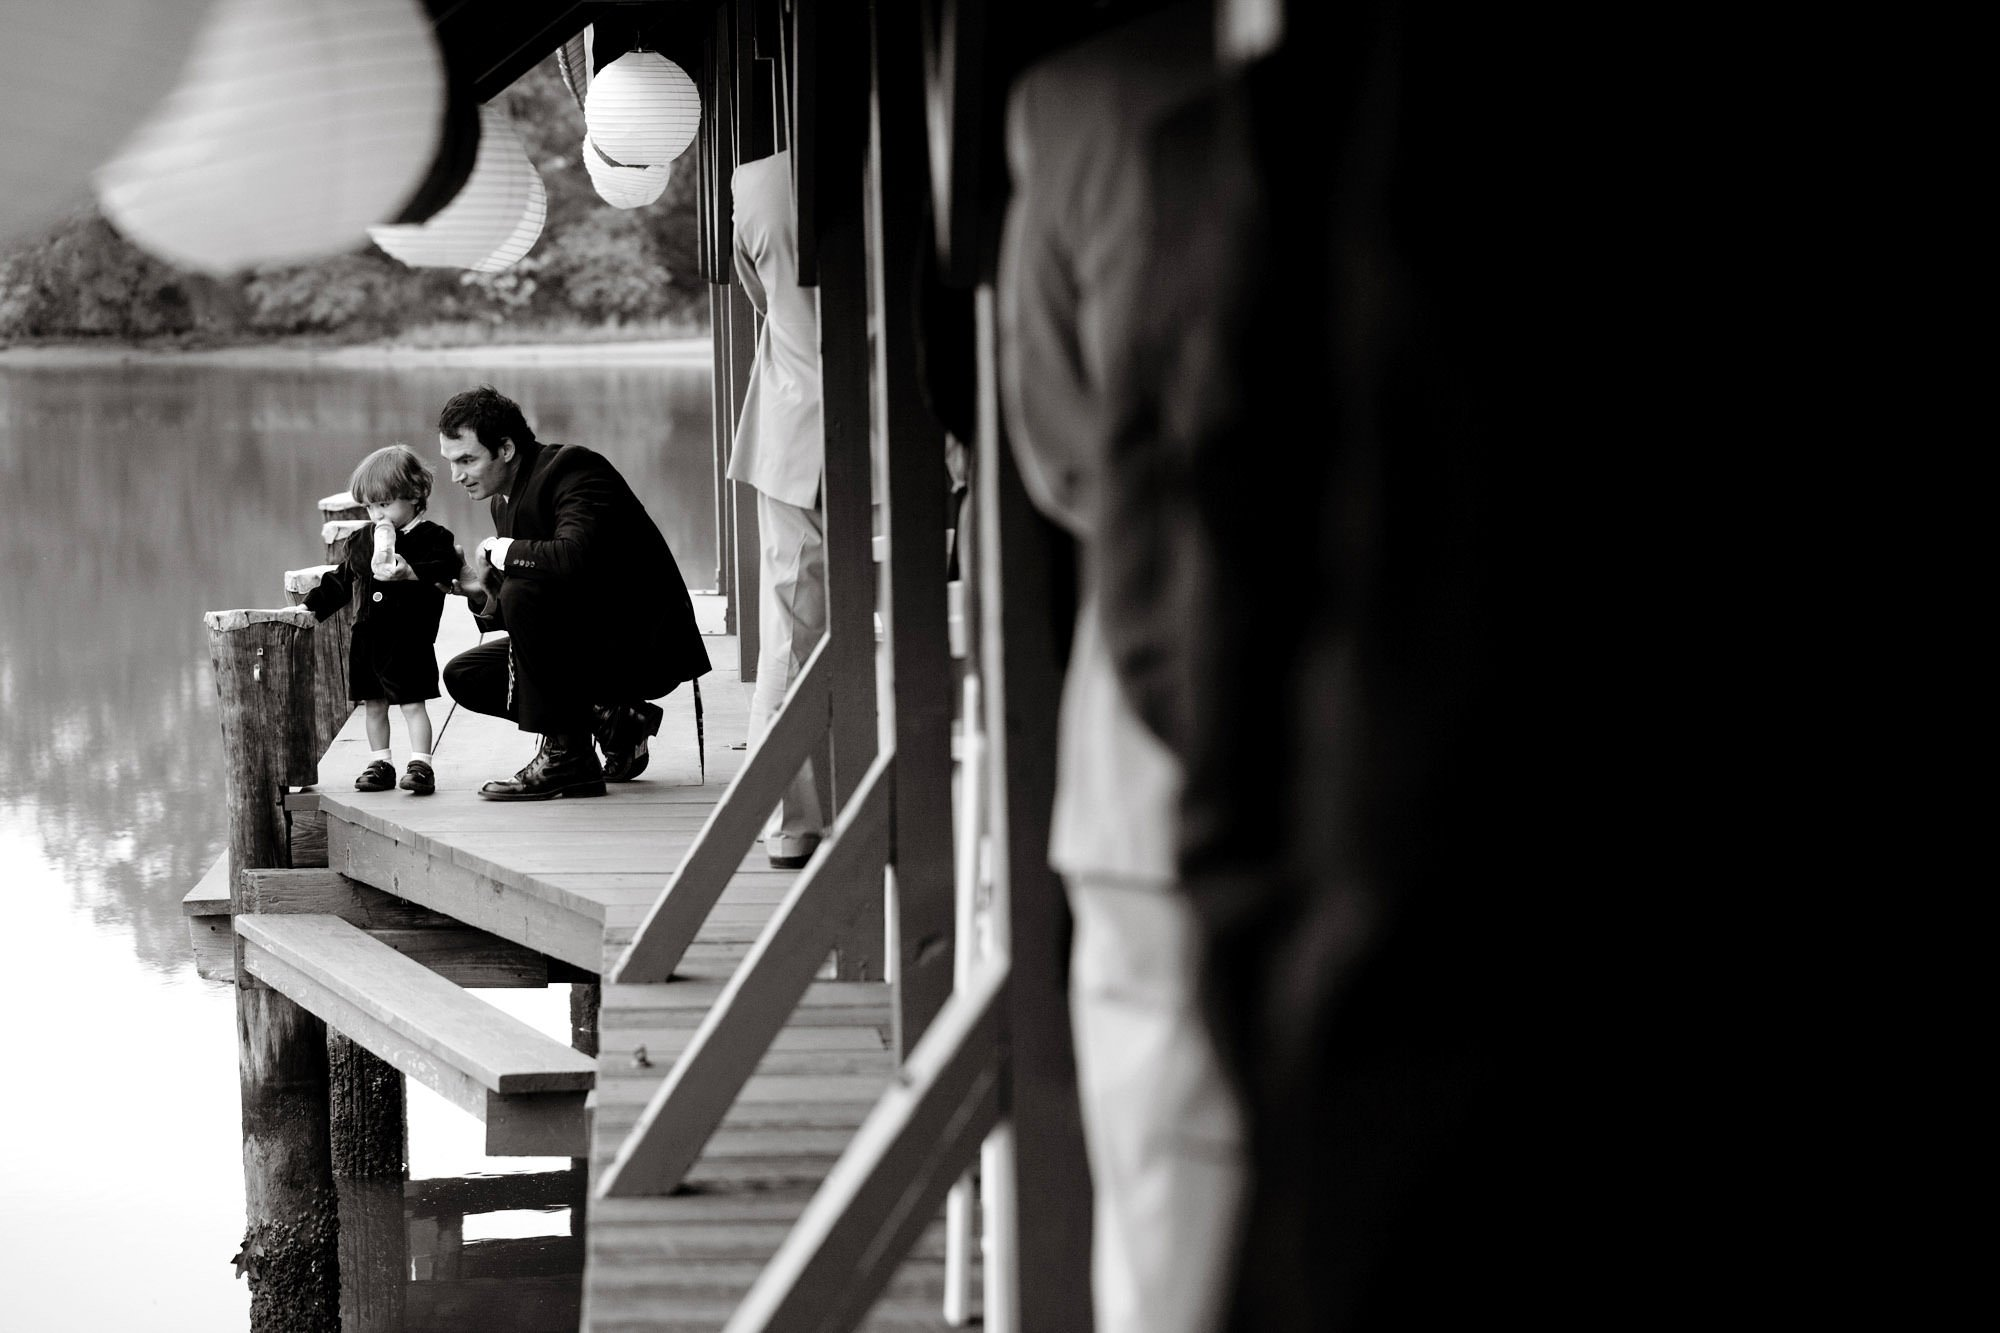 A child takes a break during the wedding ceremony